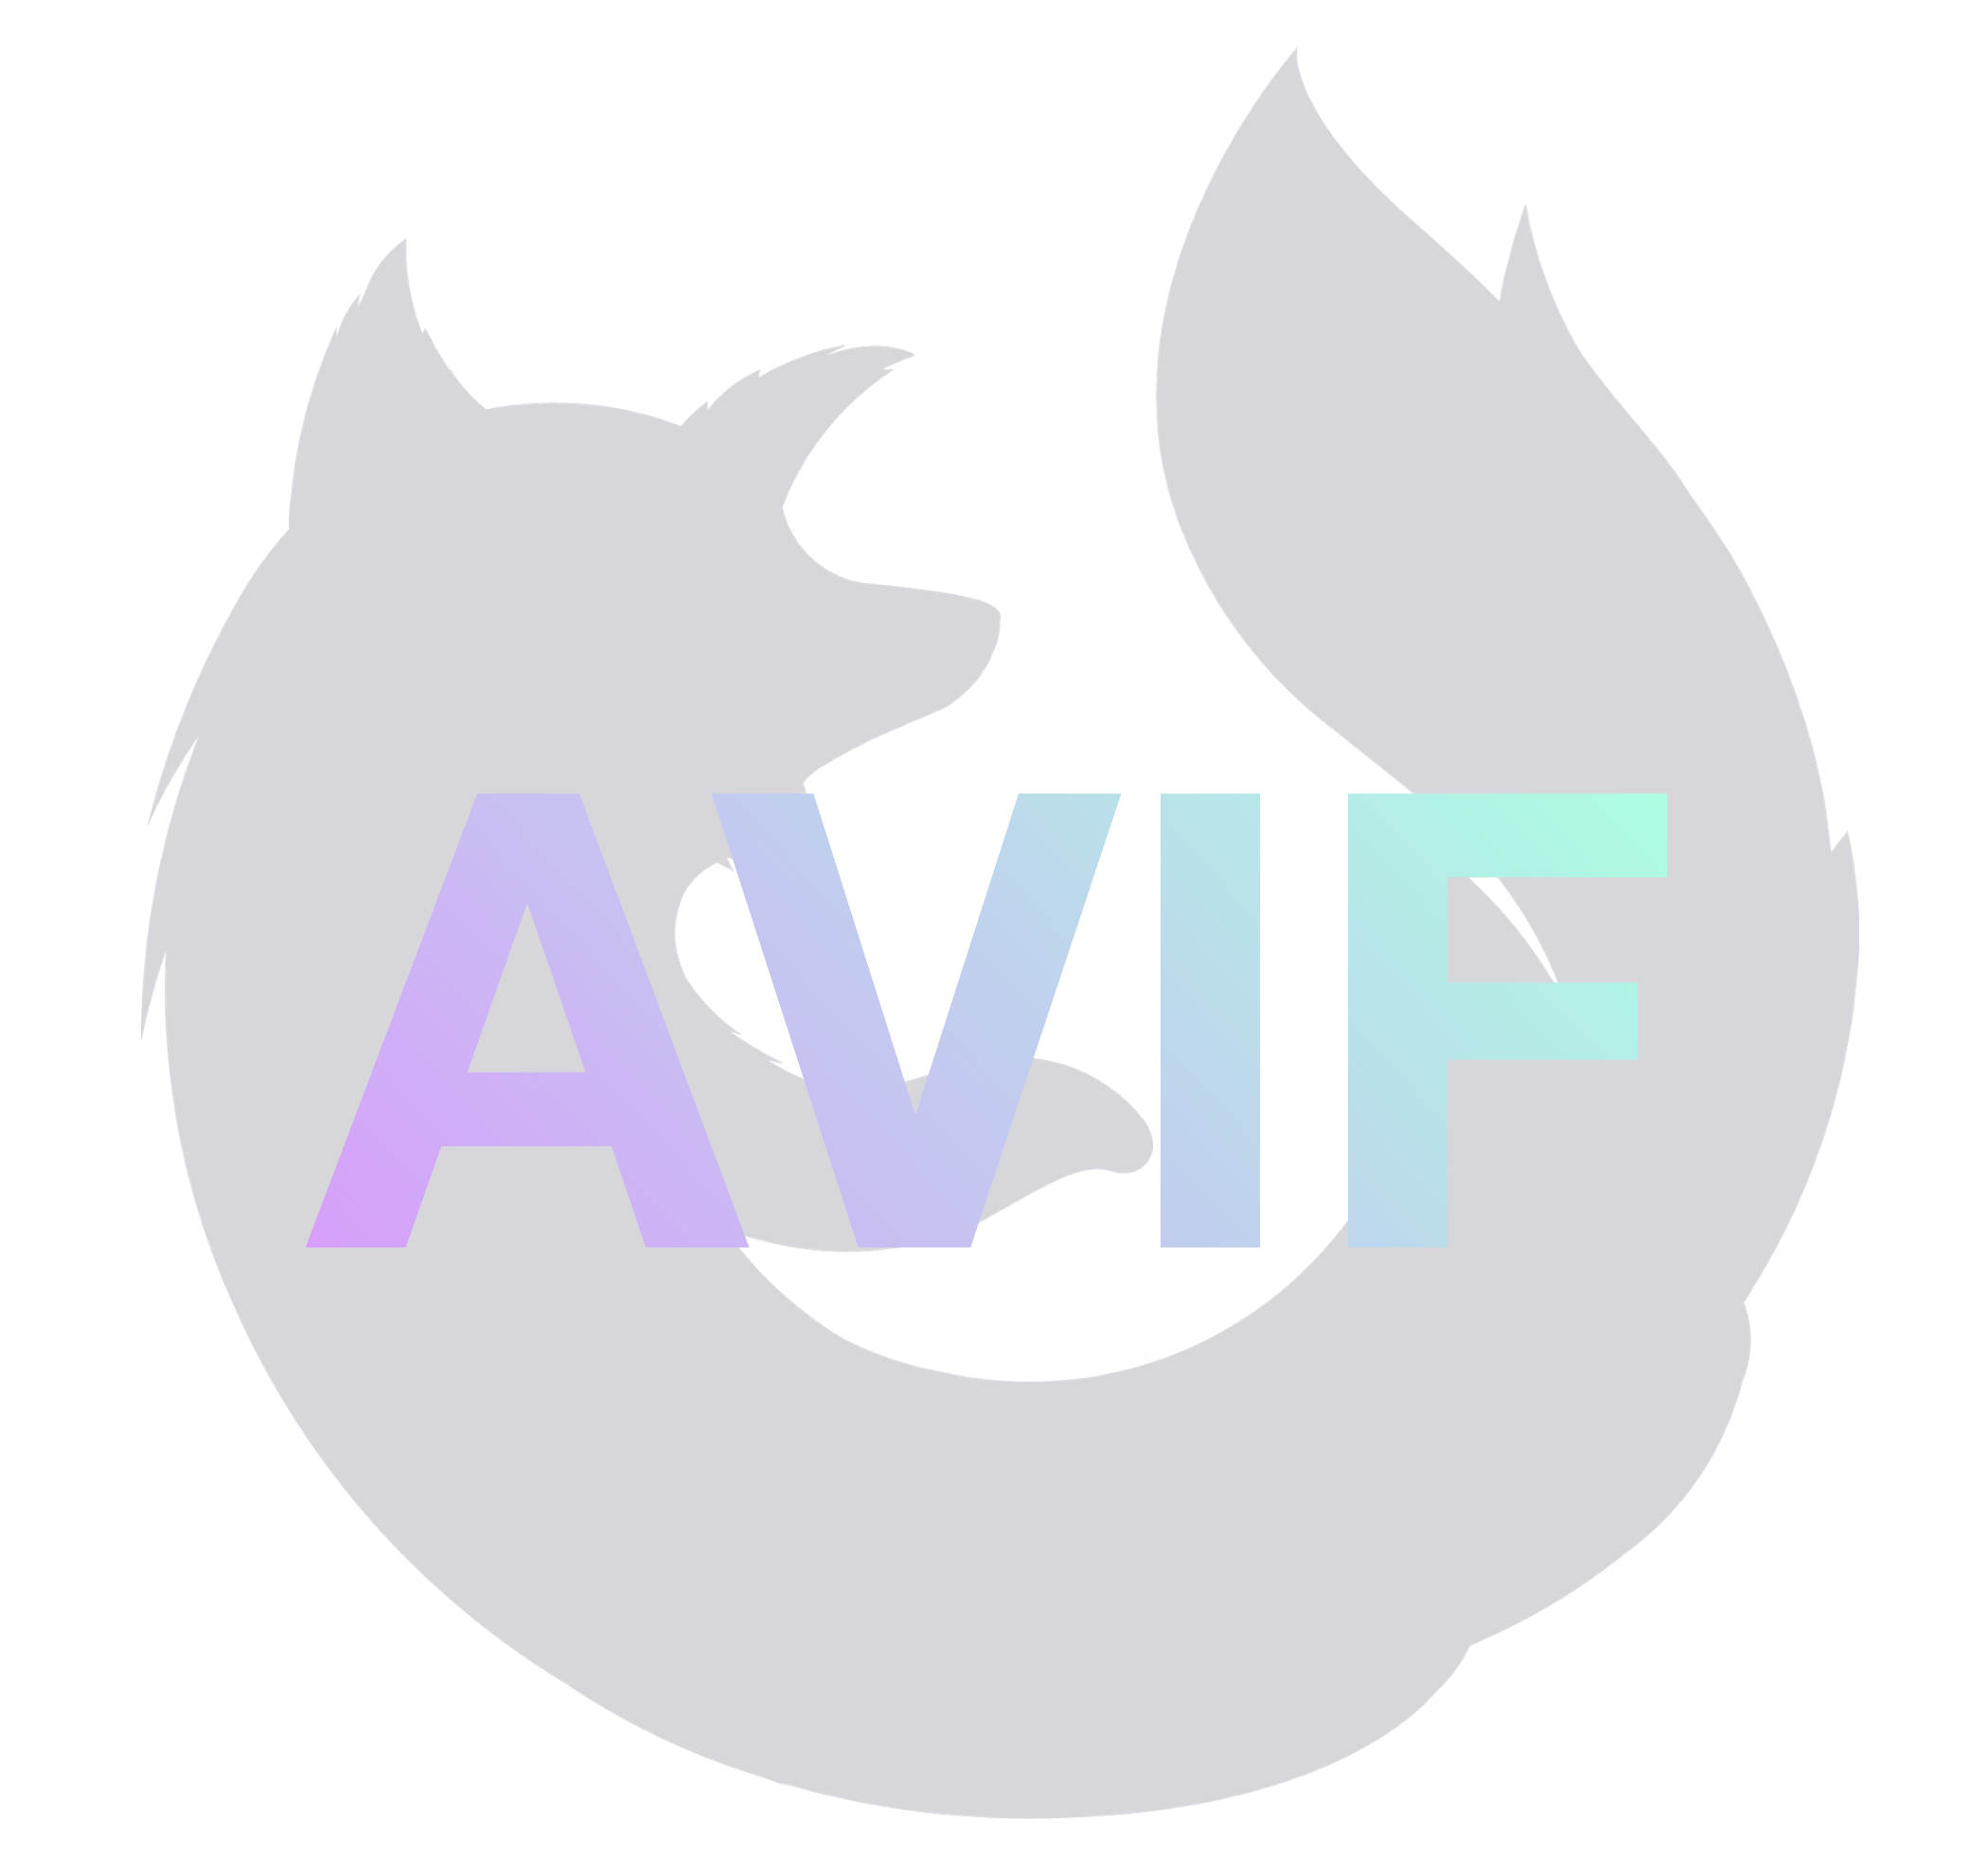 Firefox: AVIF Transparency Support